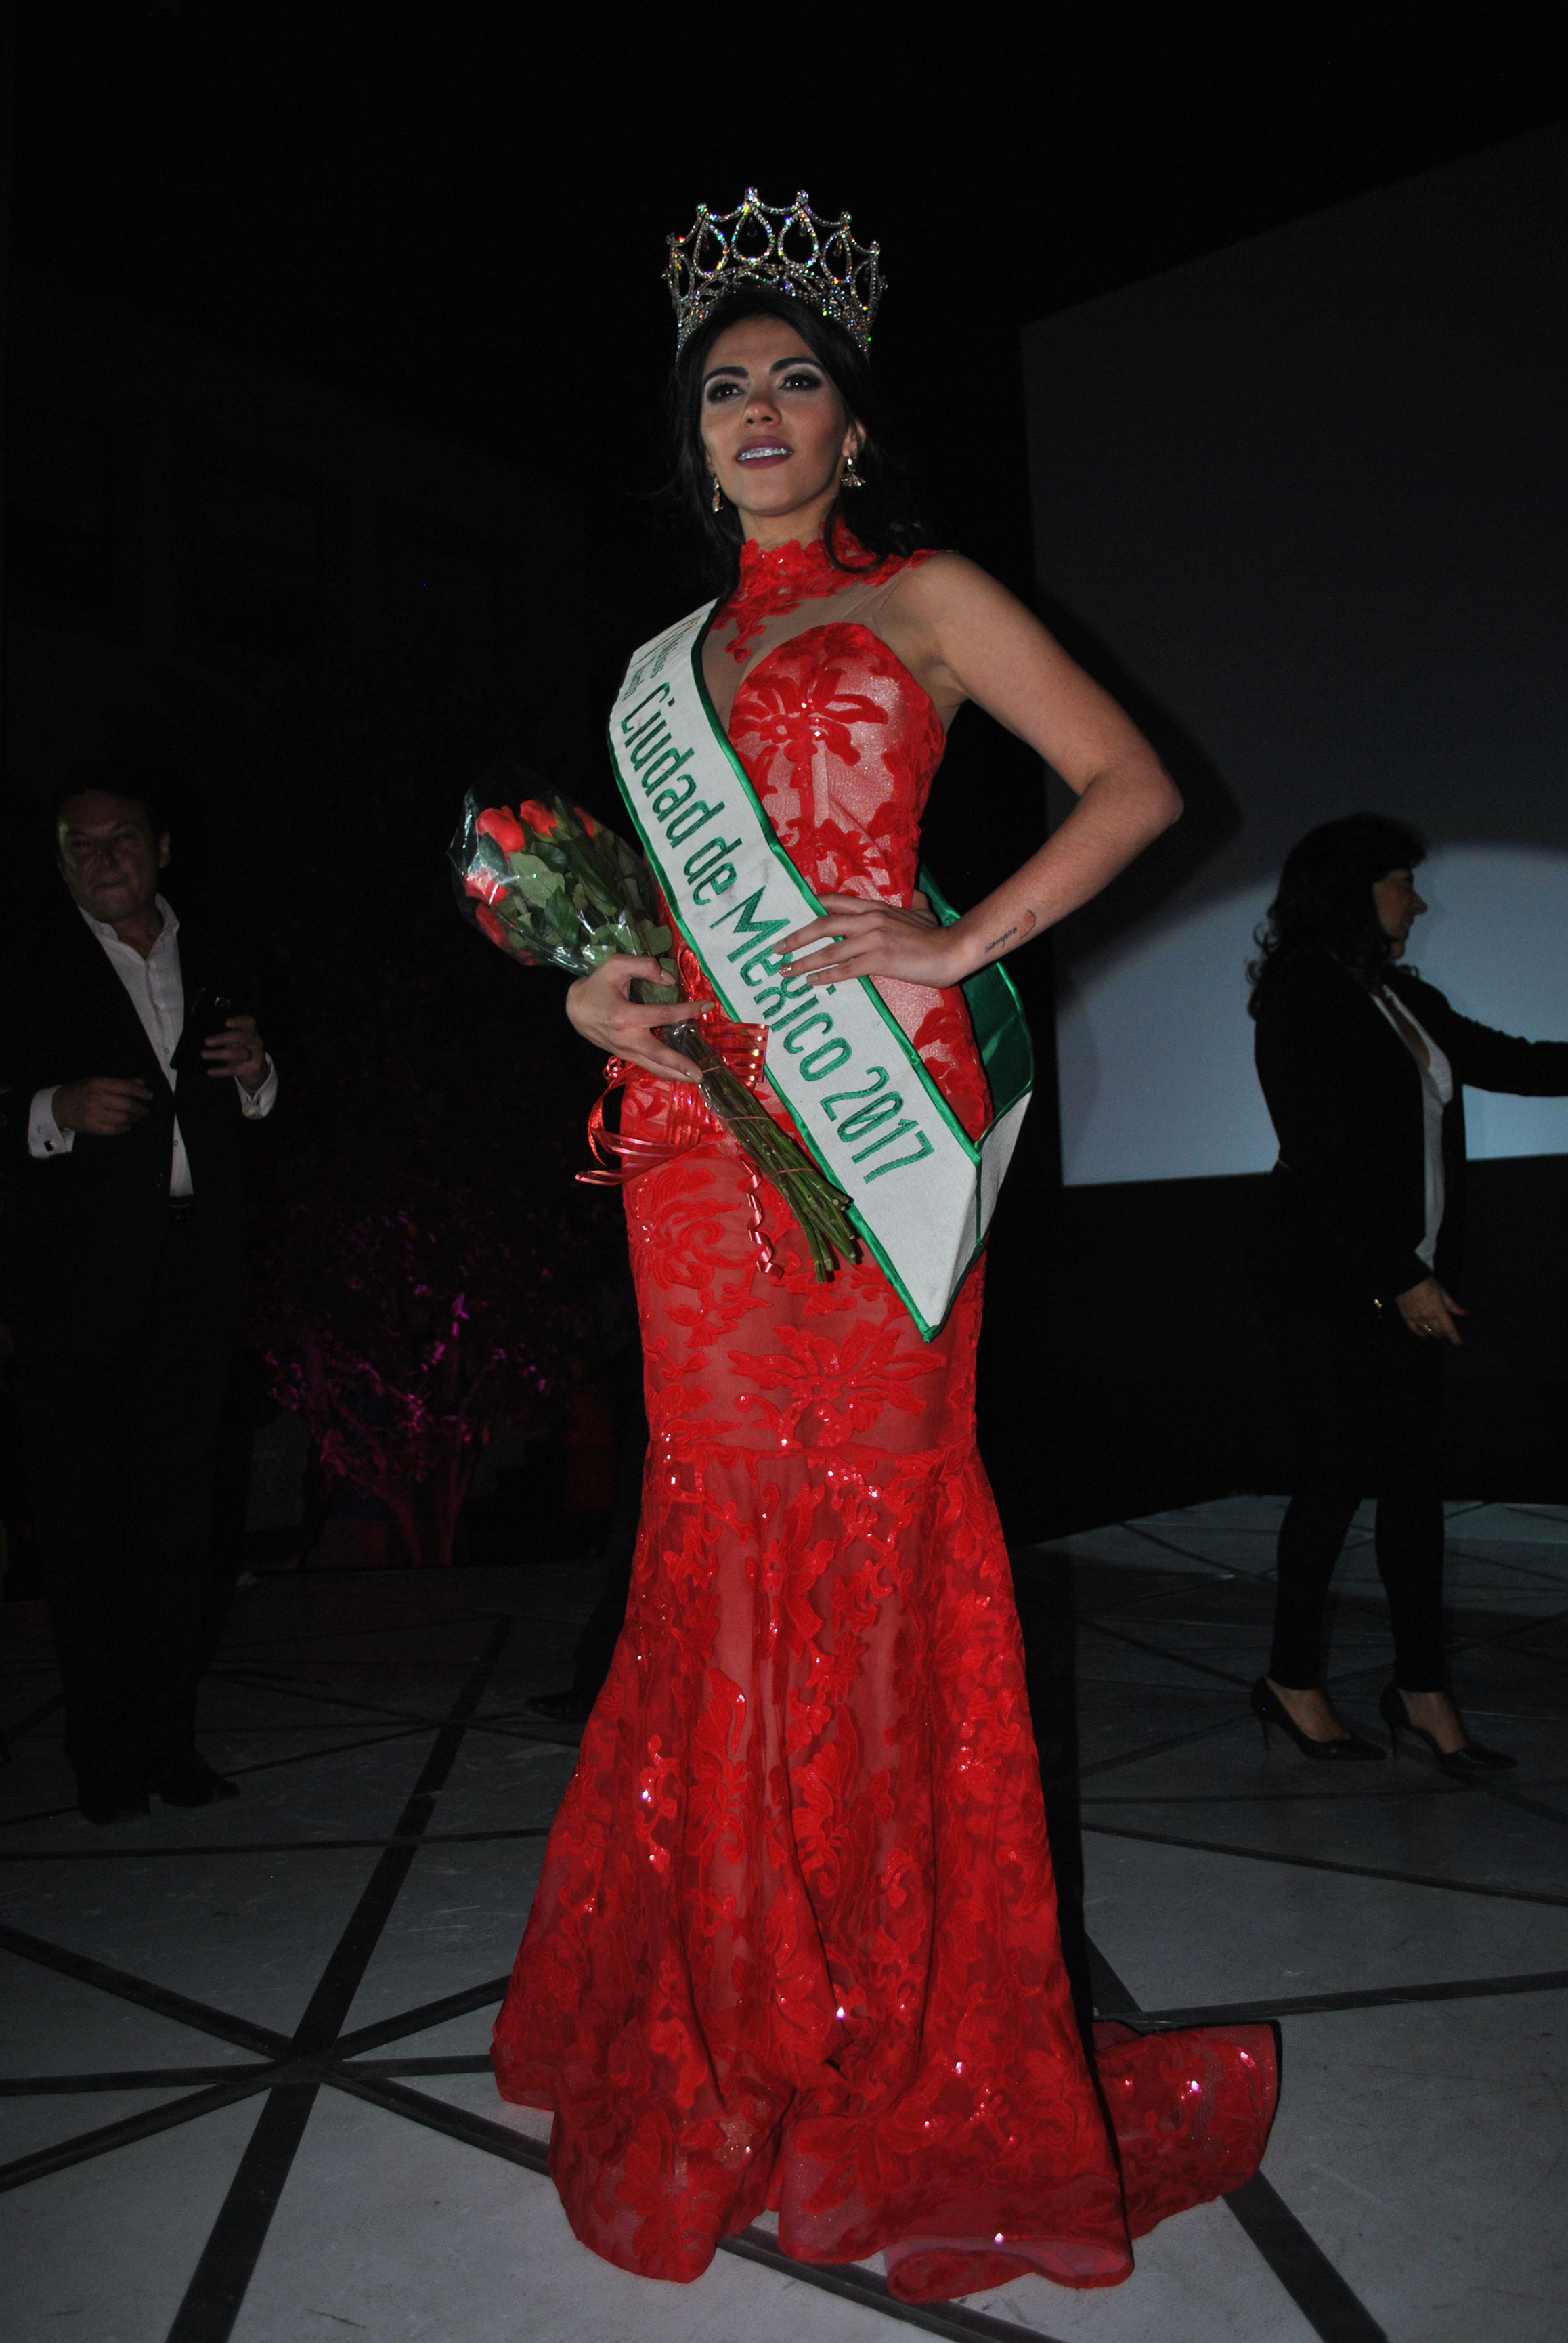 Miranda Jiménez, Miss Earth CDMX 2017